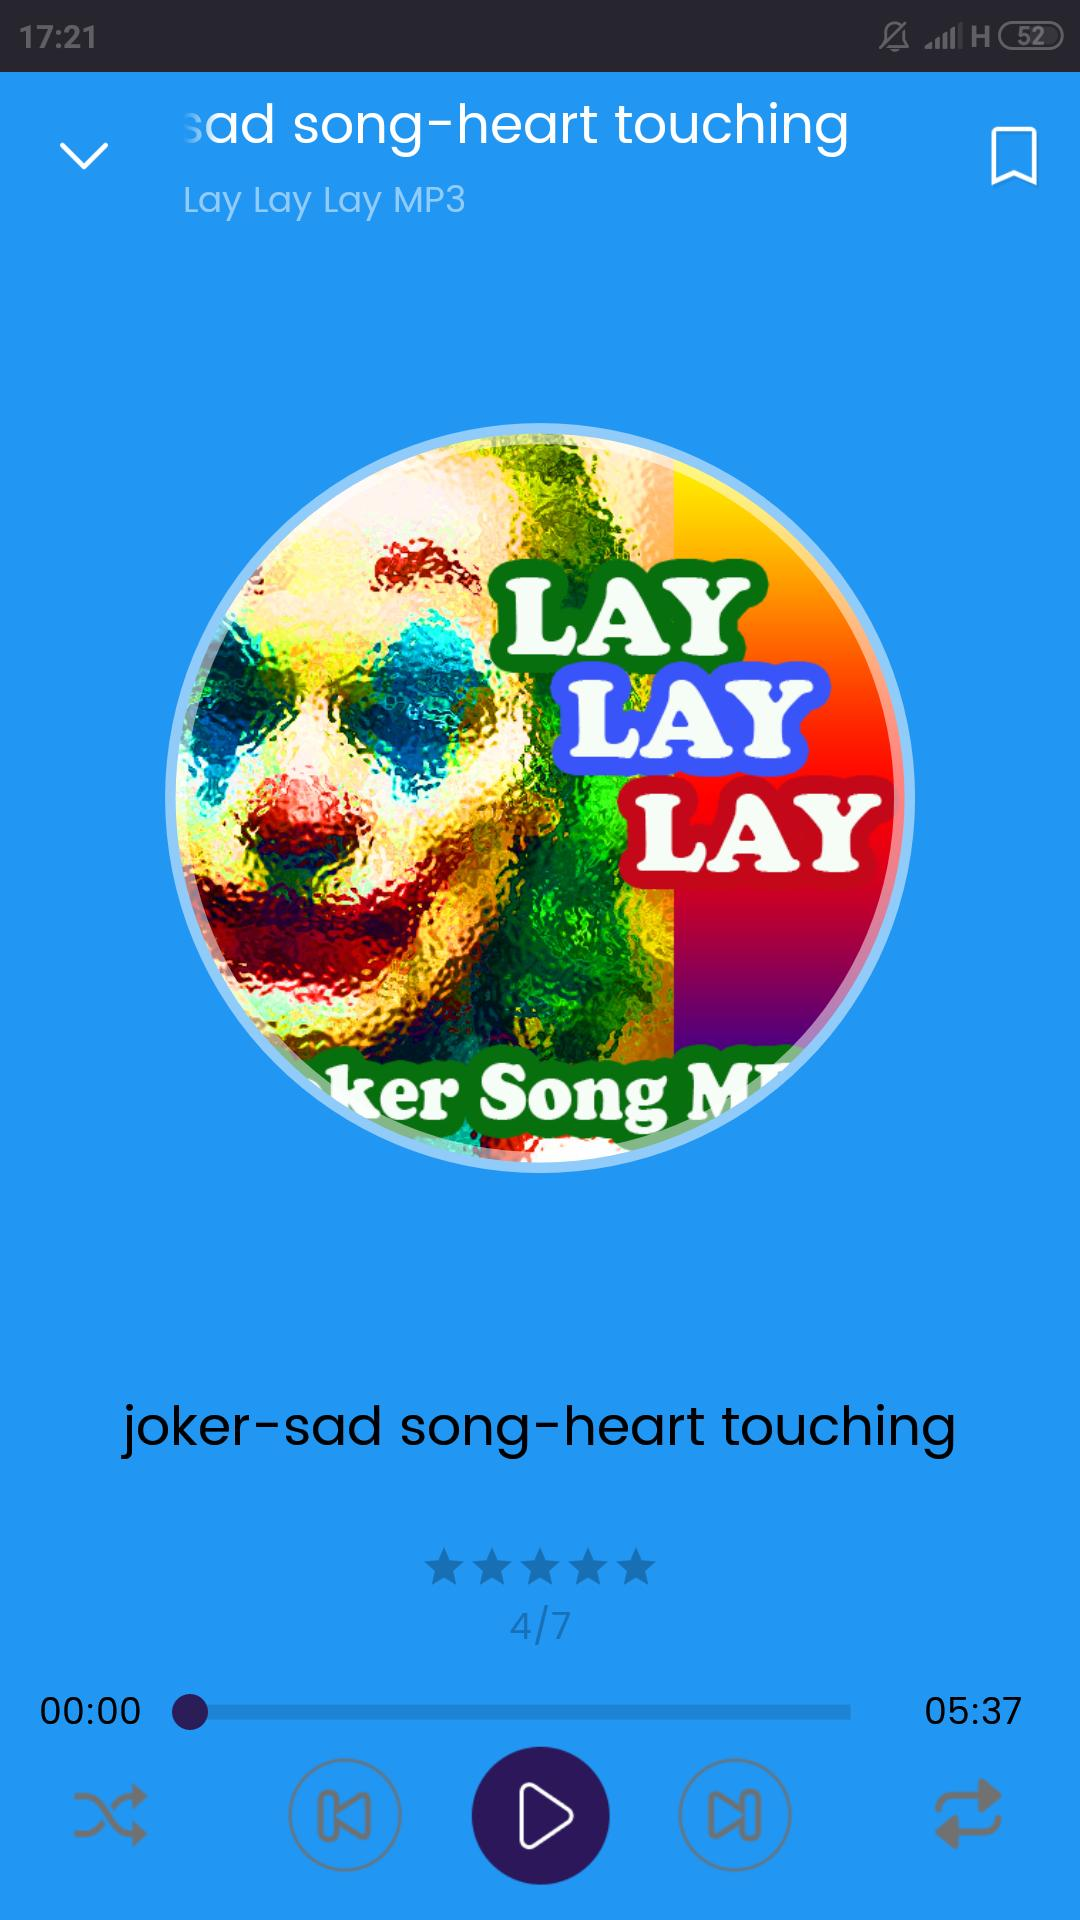 Lay Lay Lay Lay Dj Remix Joker Song Mp3 For Android Apk Download